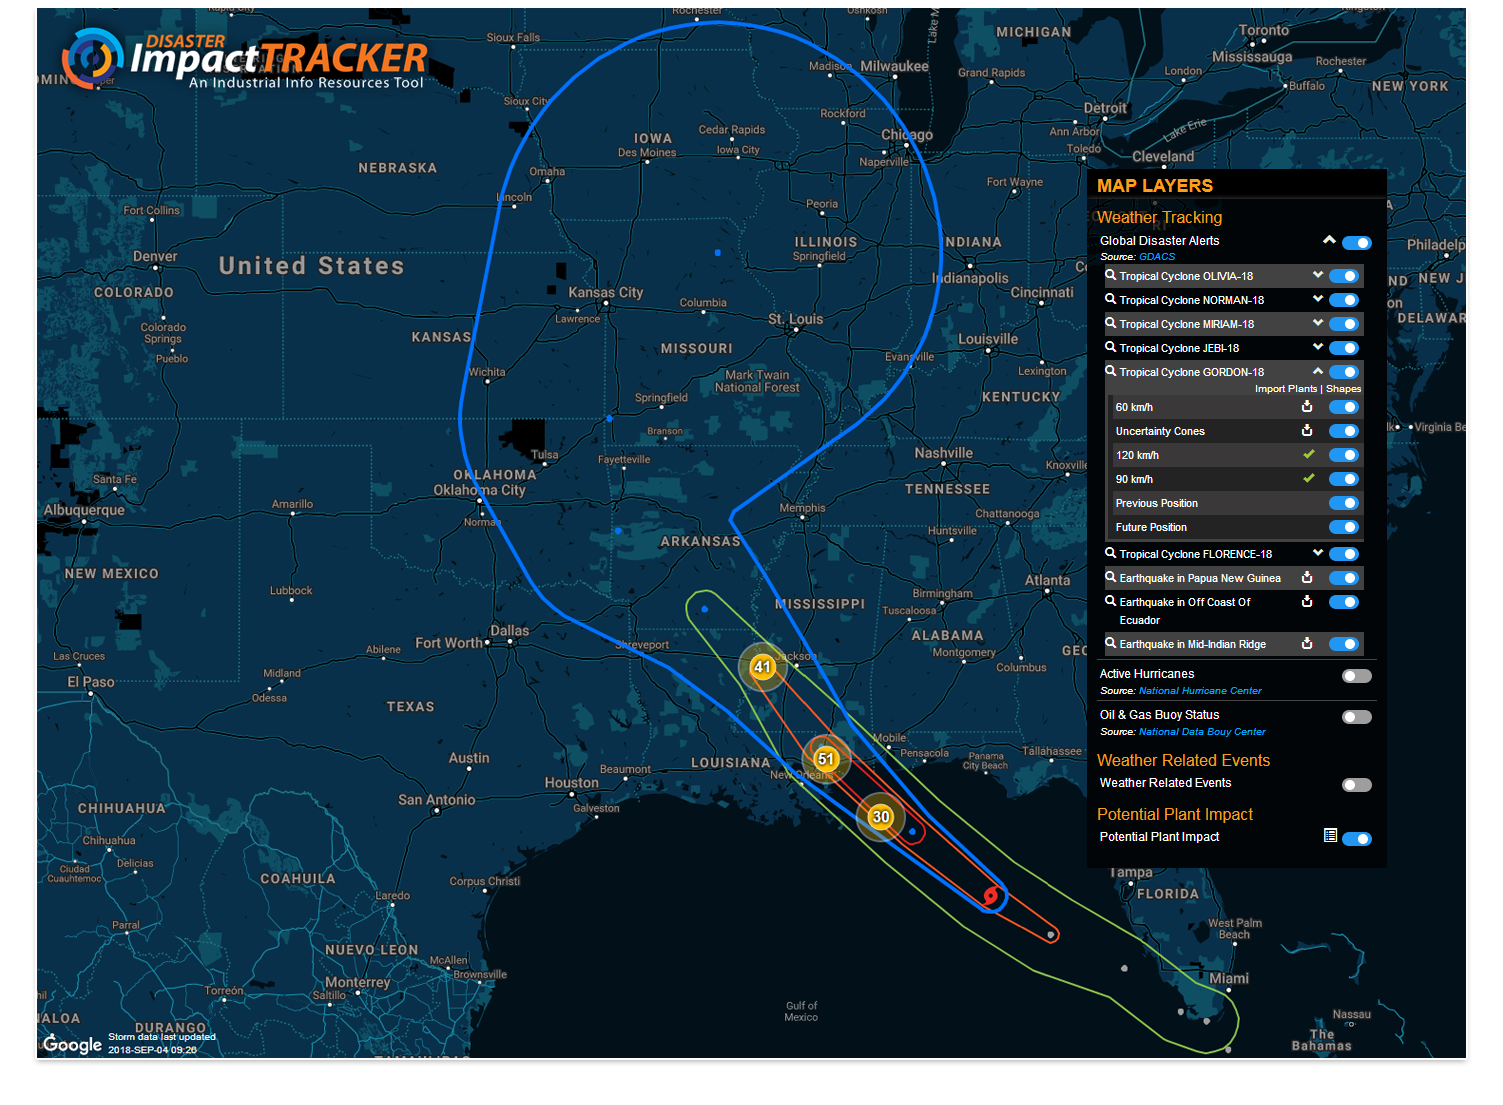 Disaster Impact Tracker - Tropical Storm Gordon